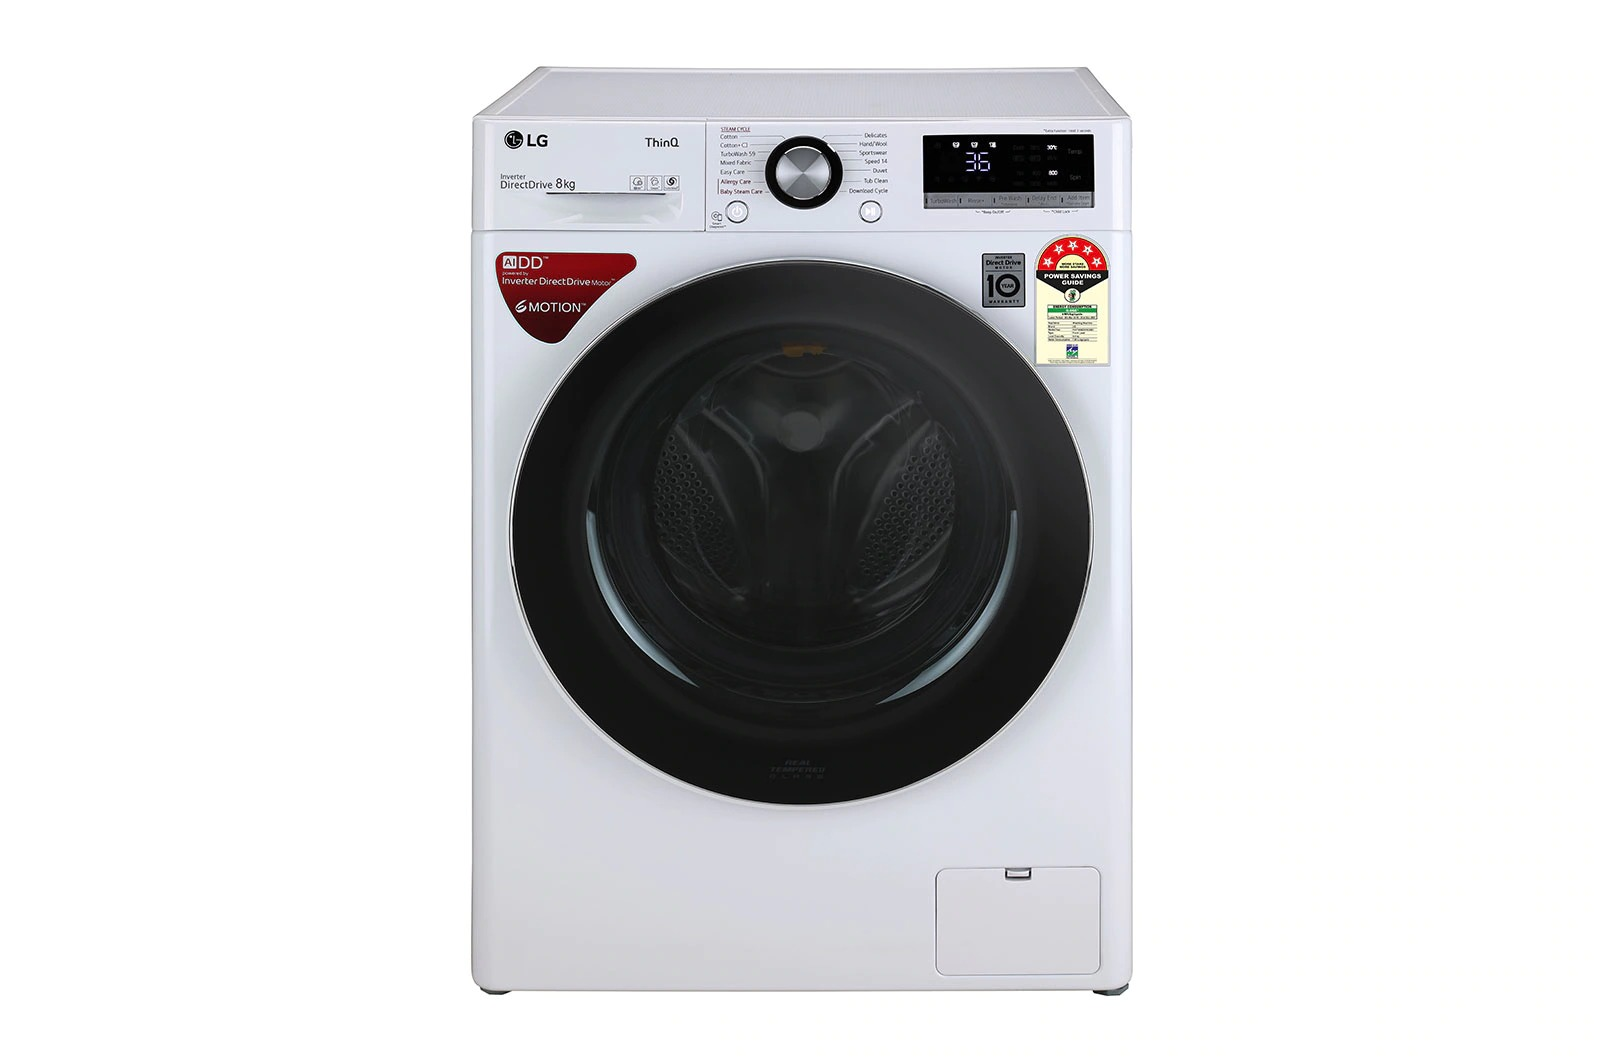 LG (FHV1408ZWW) 8.0Kg, AI Direct Drive™ Washer With Steam™ & TurboWash™